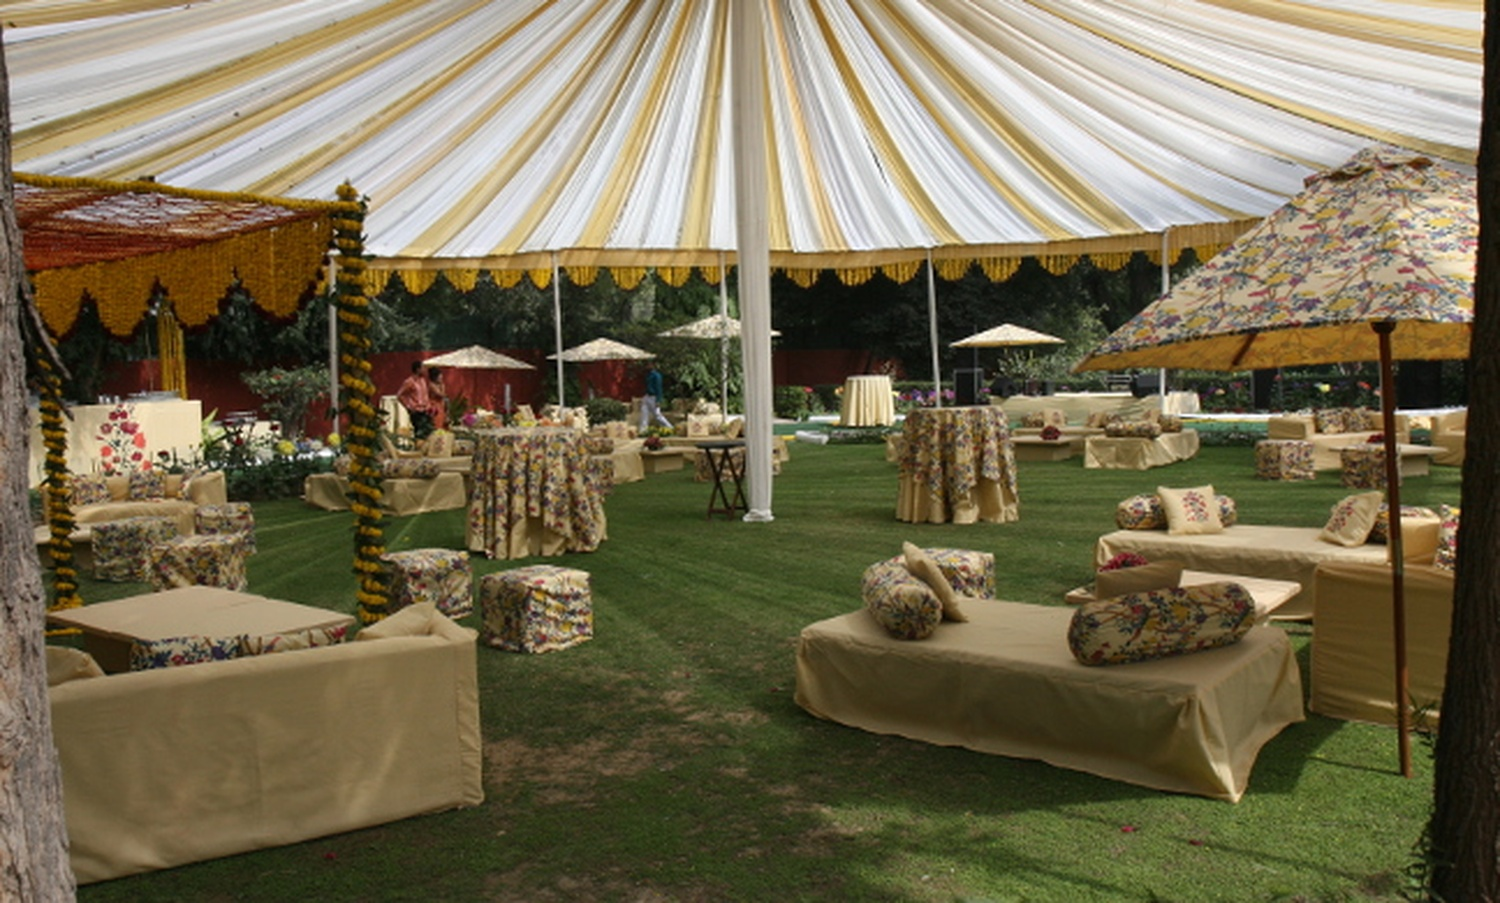 Bhola tent house wedding decorator in delhi weddingz for Tent a house